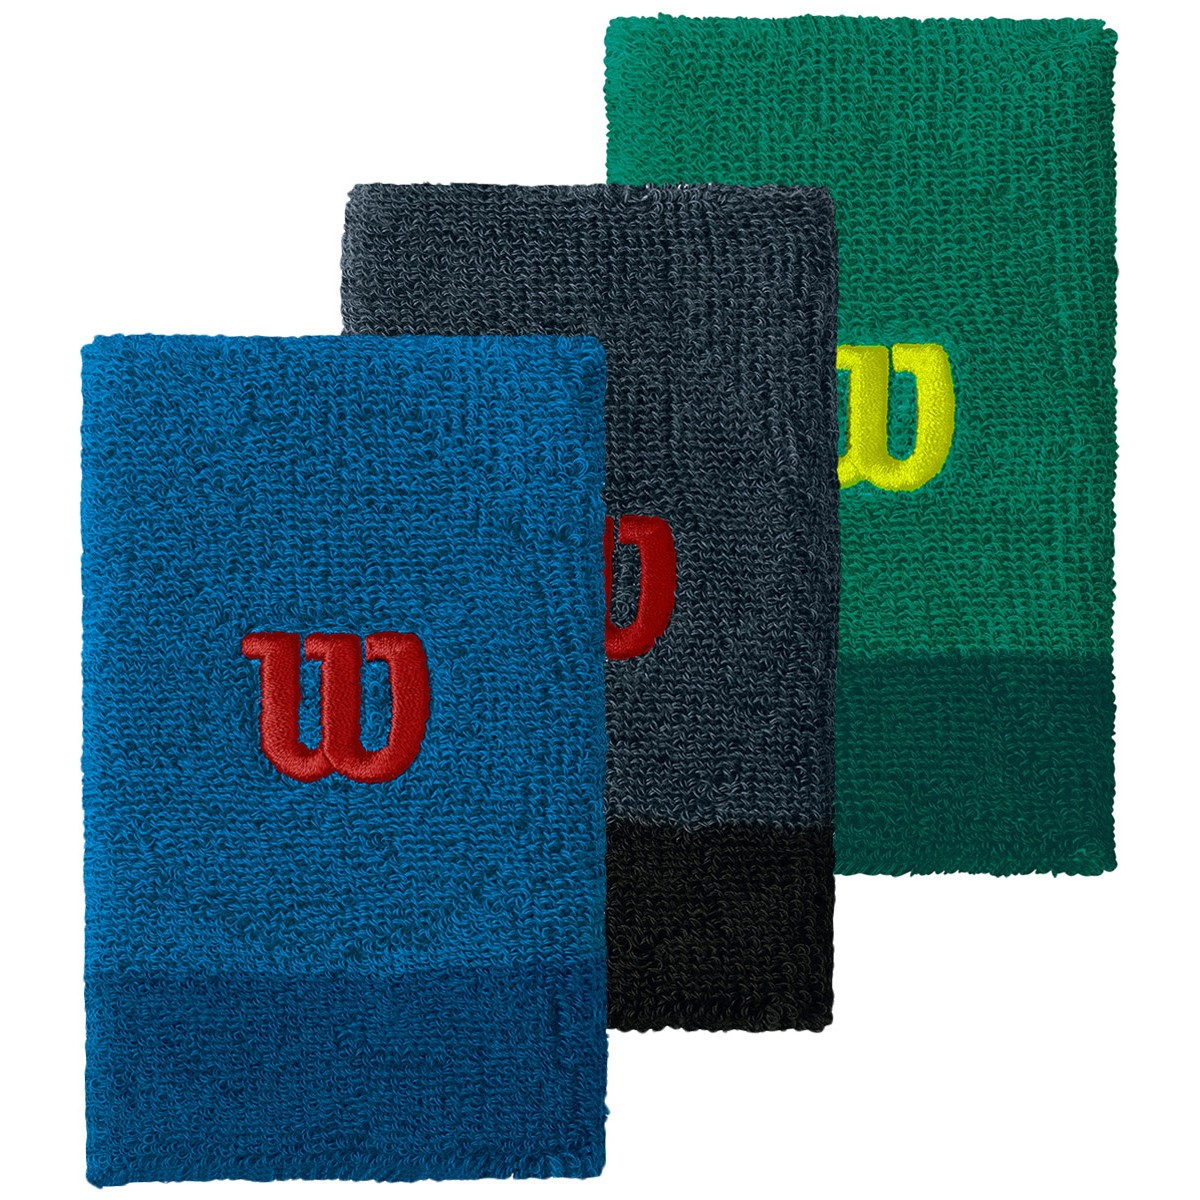 WILSON EXTRA WIDE WRISTBANDS